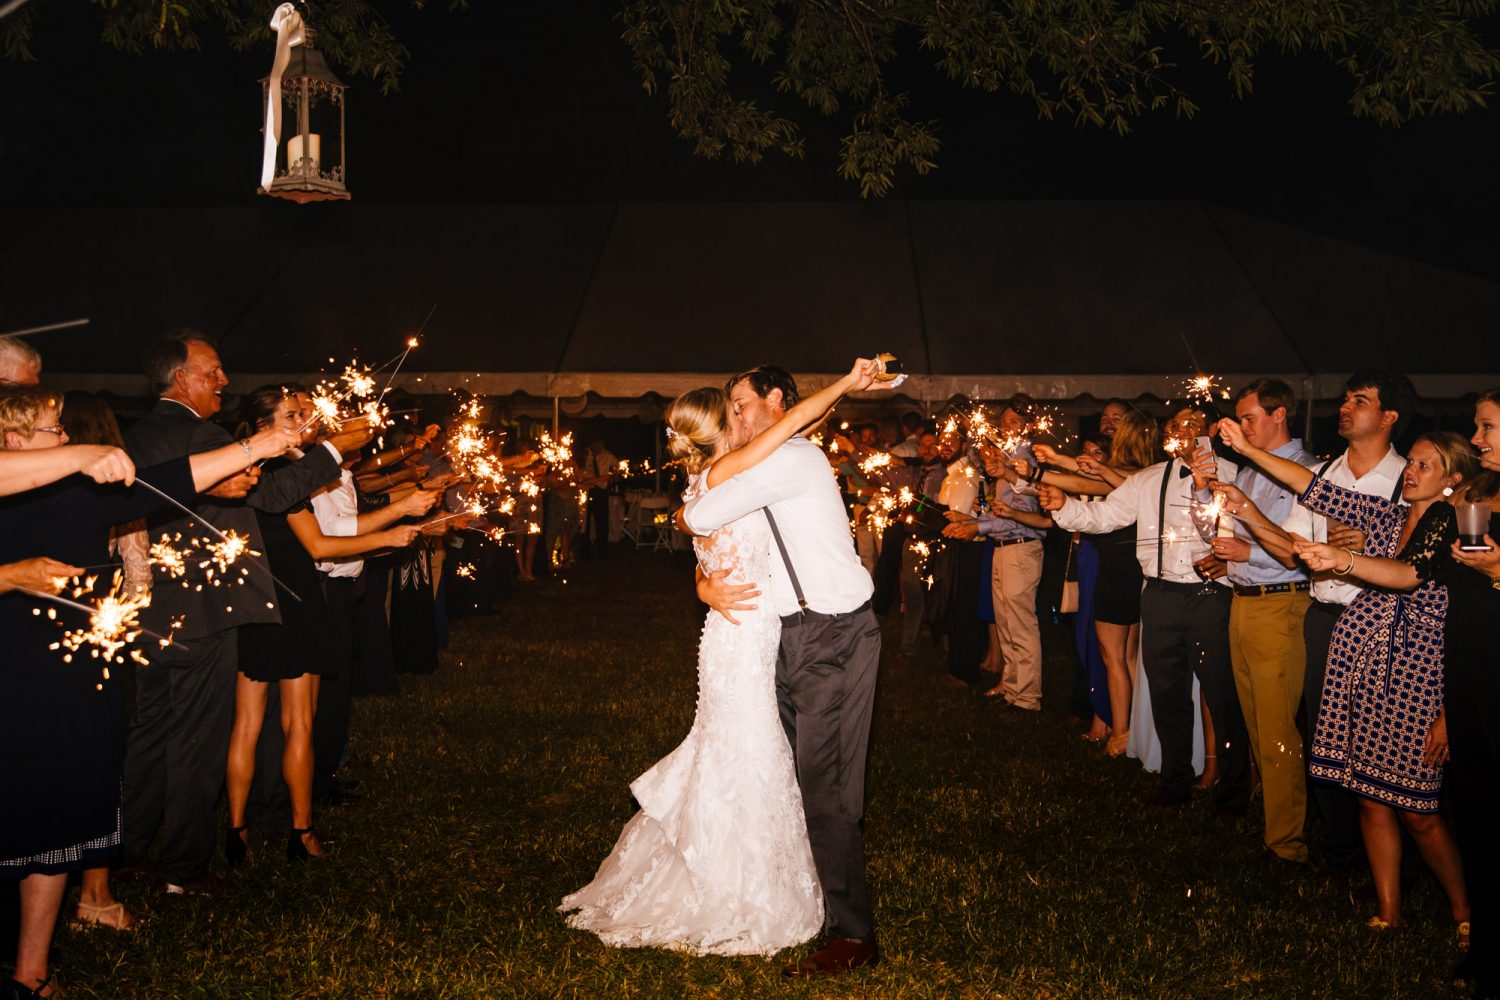 Waynesville, NC Wedding Photography | Bride and Groom Kissing at Sparkler Exit